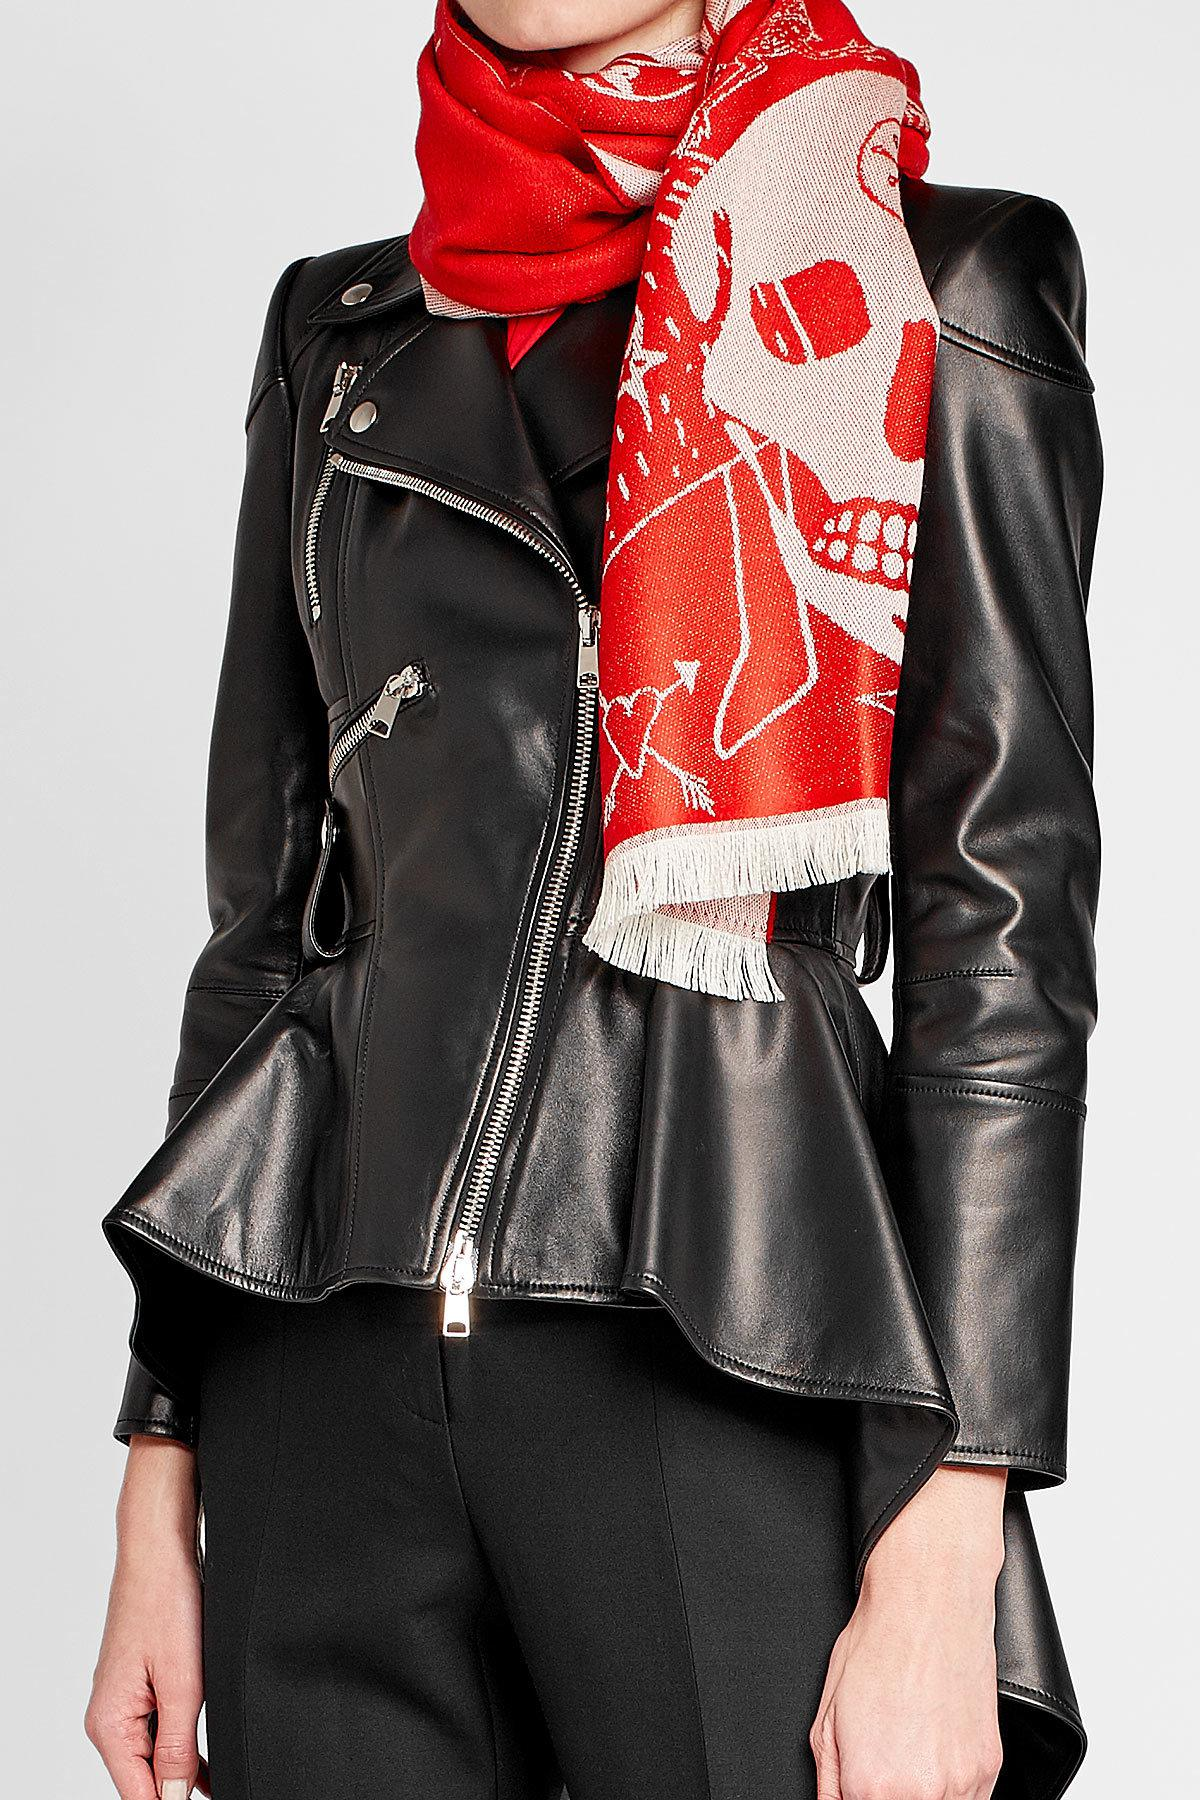 Lyst - Alexander mcqueen Printed Cashmere Scarf in Red